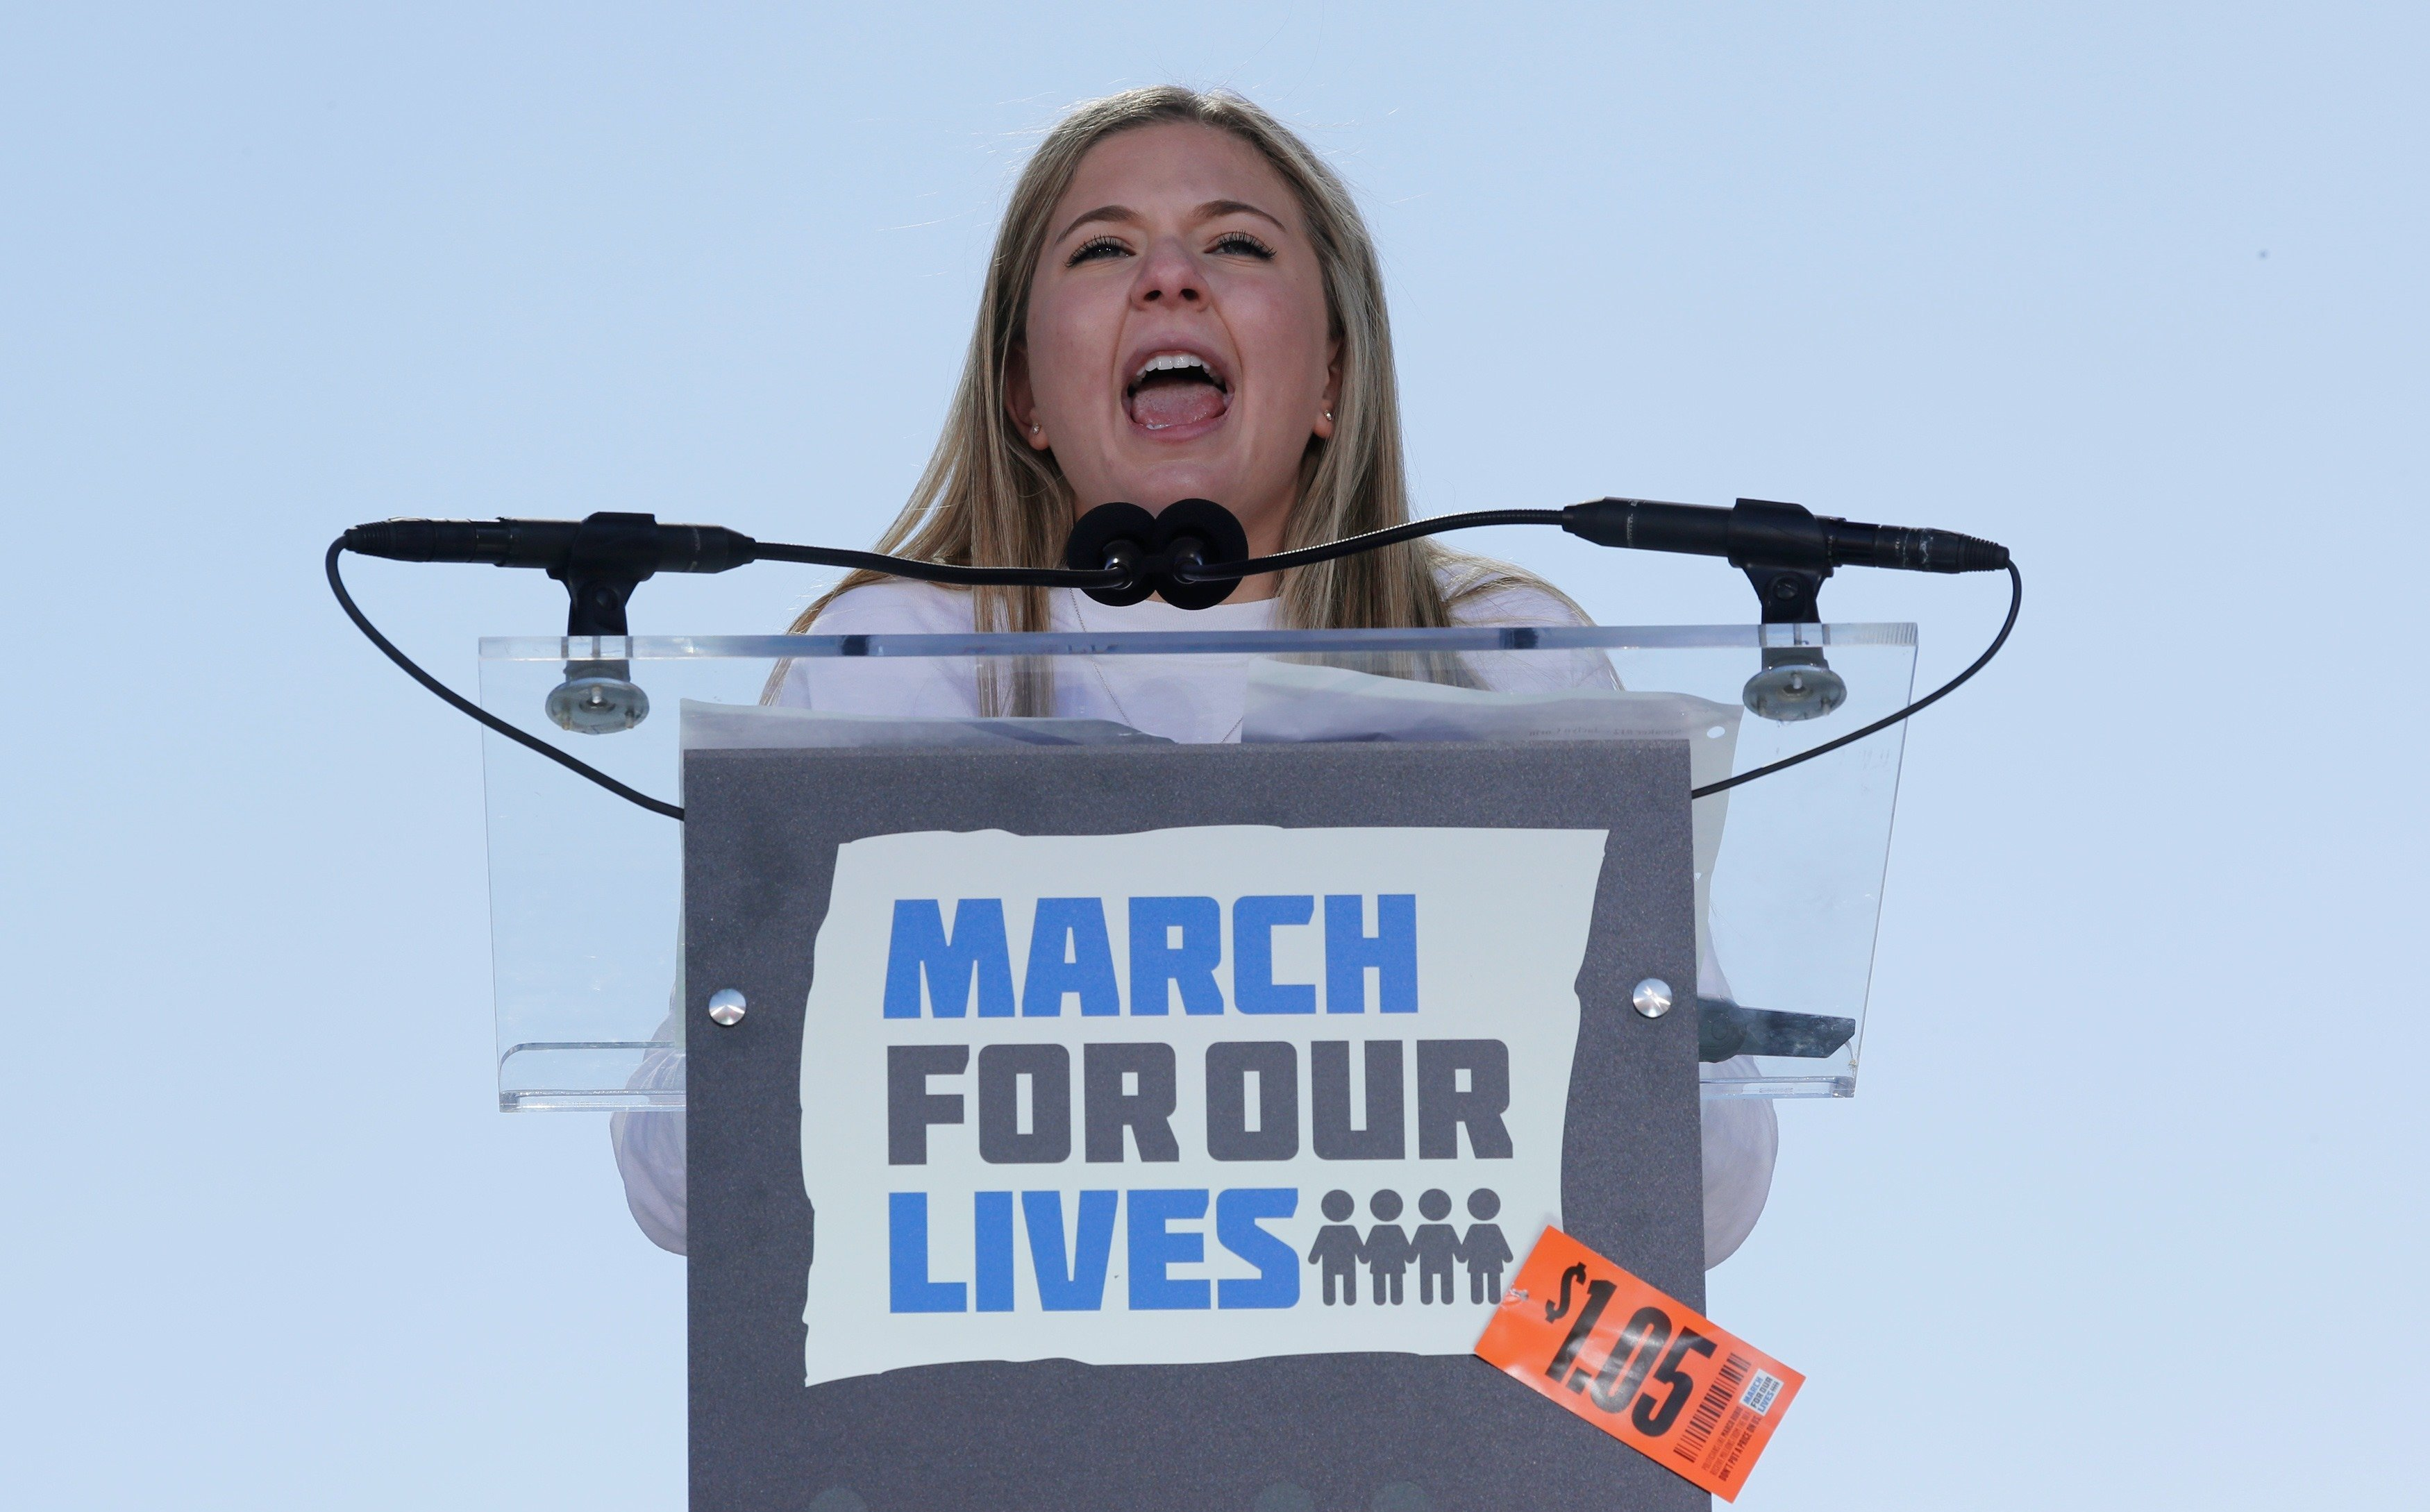 Marjory Stoneman Douglas High School student and shooting survivor Jaclyn Corin, from Parkland, Florida, speaks as students and gun control advocates hold the March for Our Lives event demanding gun control after recent school shootings at a rally in Washington, U.S., March 24, 2018